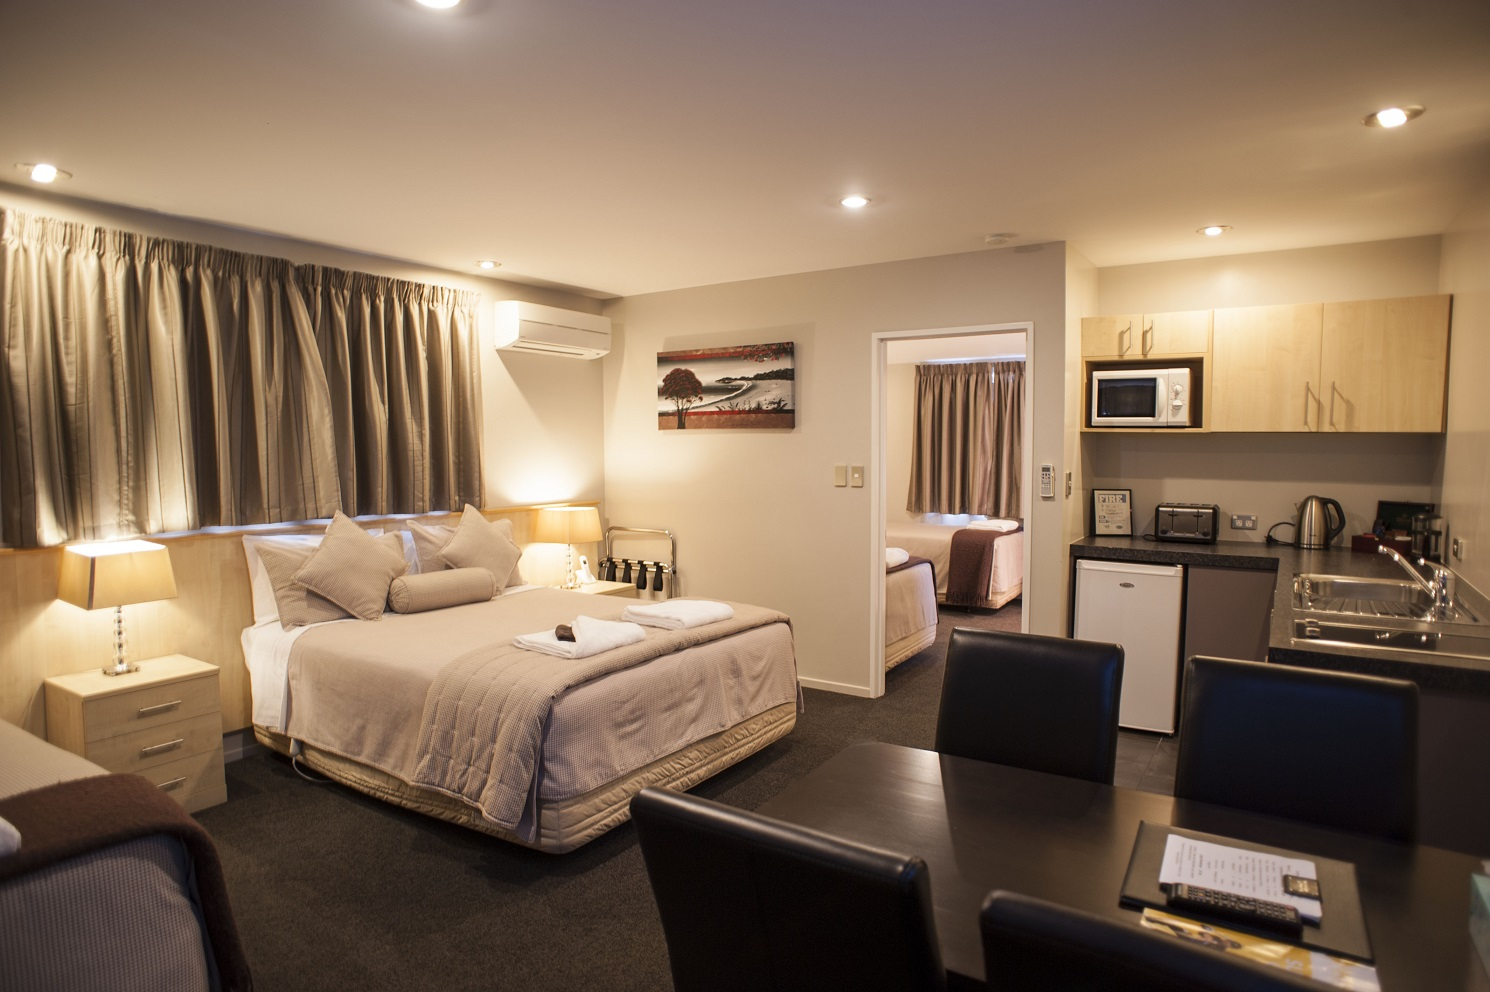 christchurch luxury apartment qualmark 5 star 1 bedroom